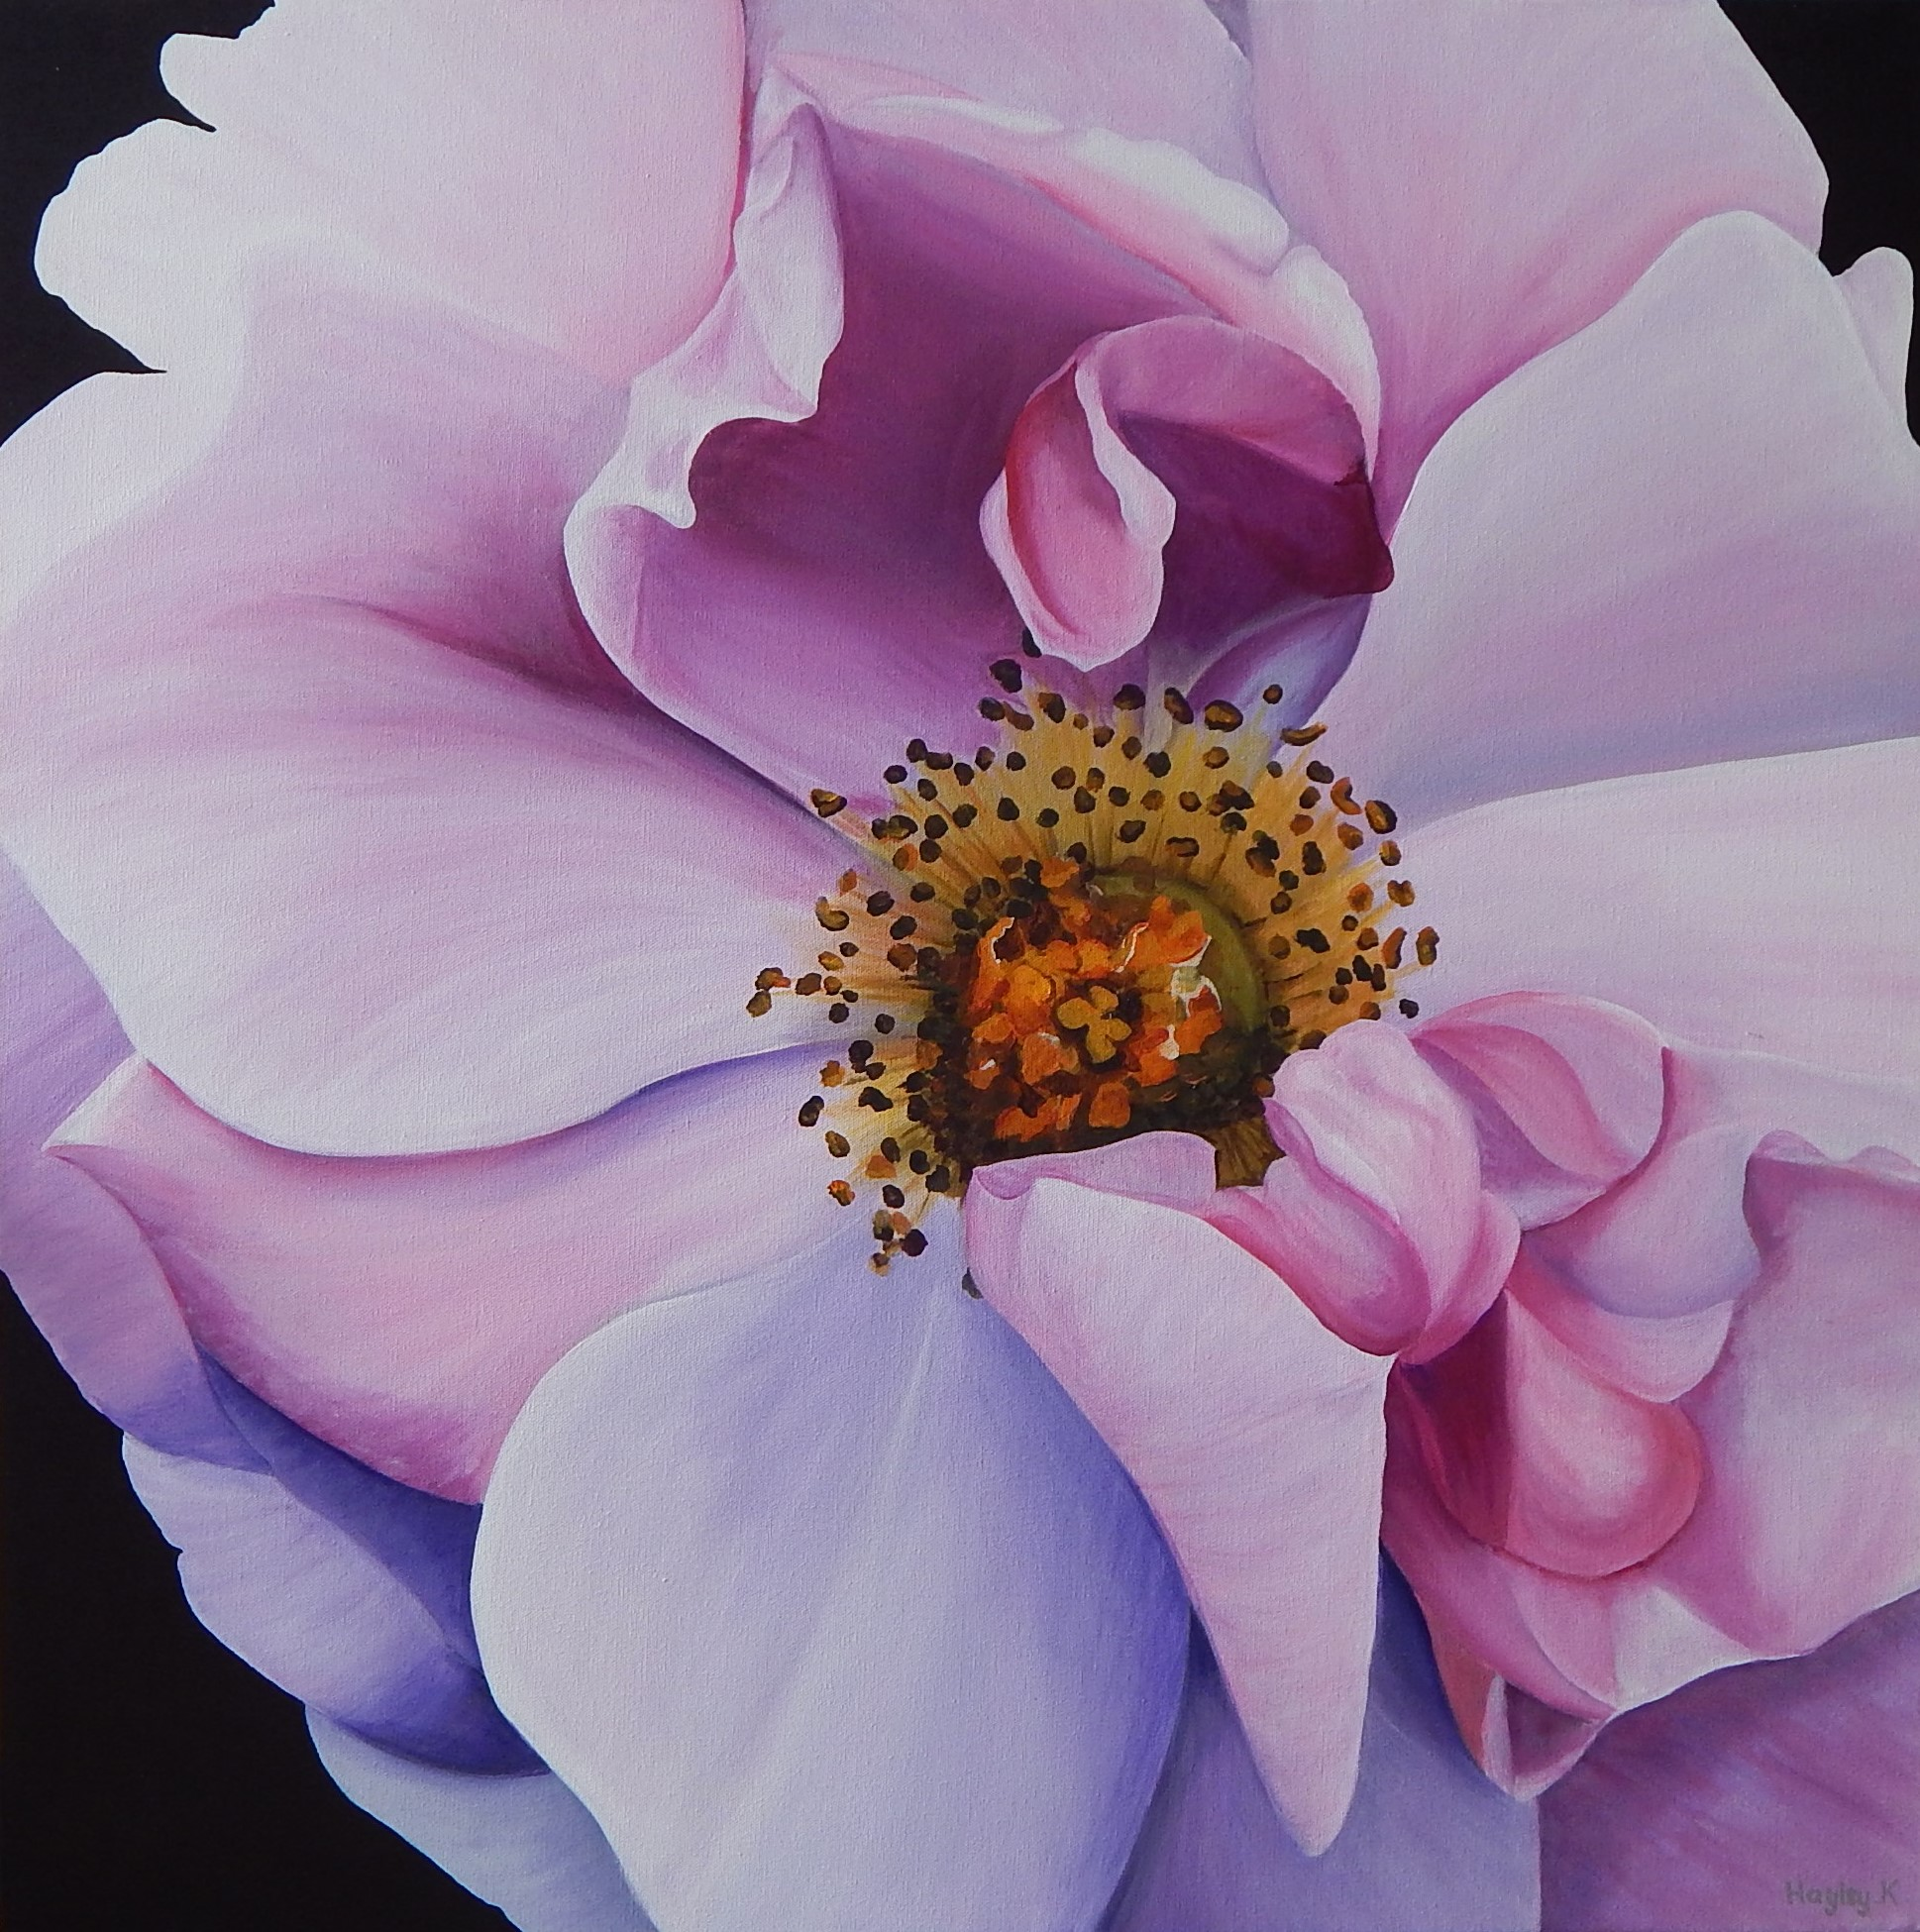 Entrancing 76cm (W) x 76cm (H) $800  This magical mauve rose was photographed on a family camping trip down South in WA. There is beauty wherever you go.